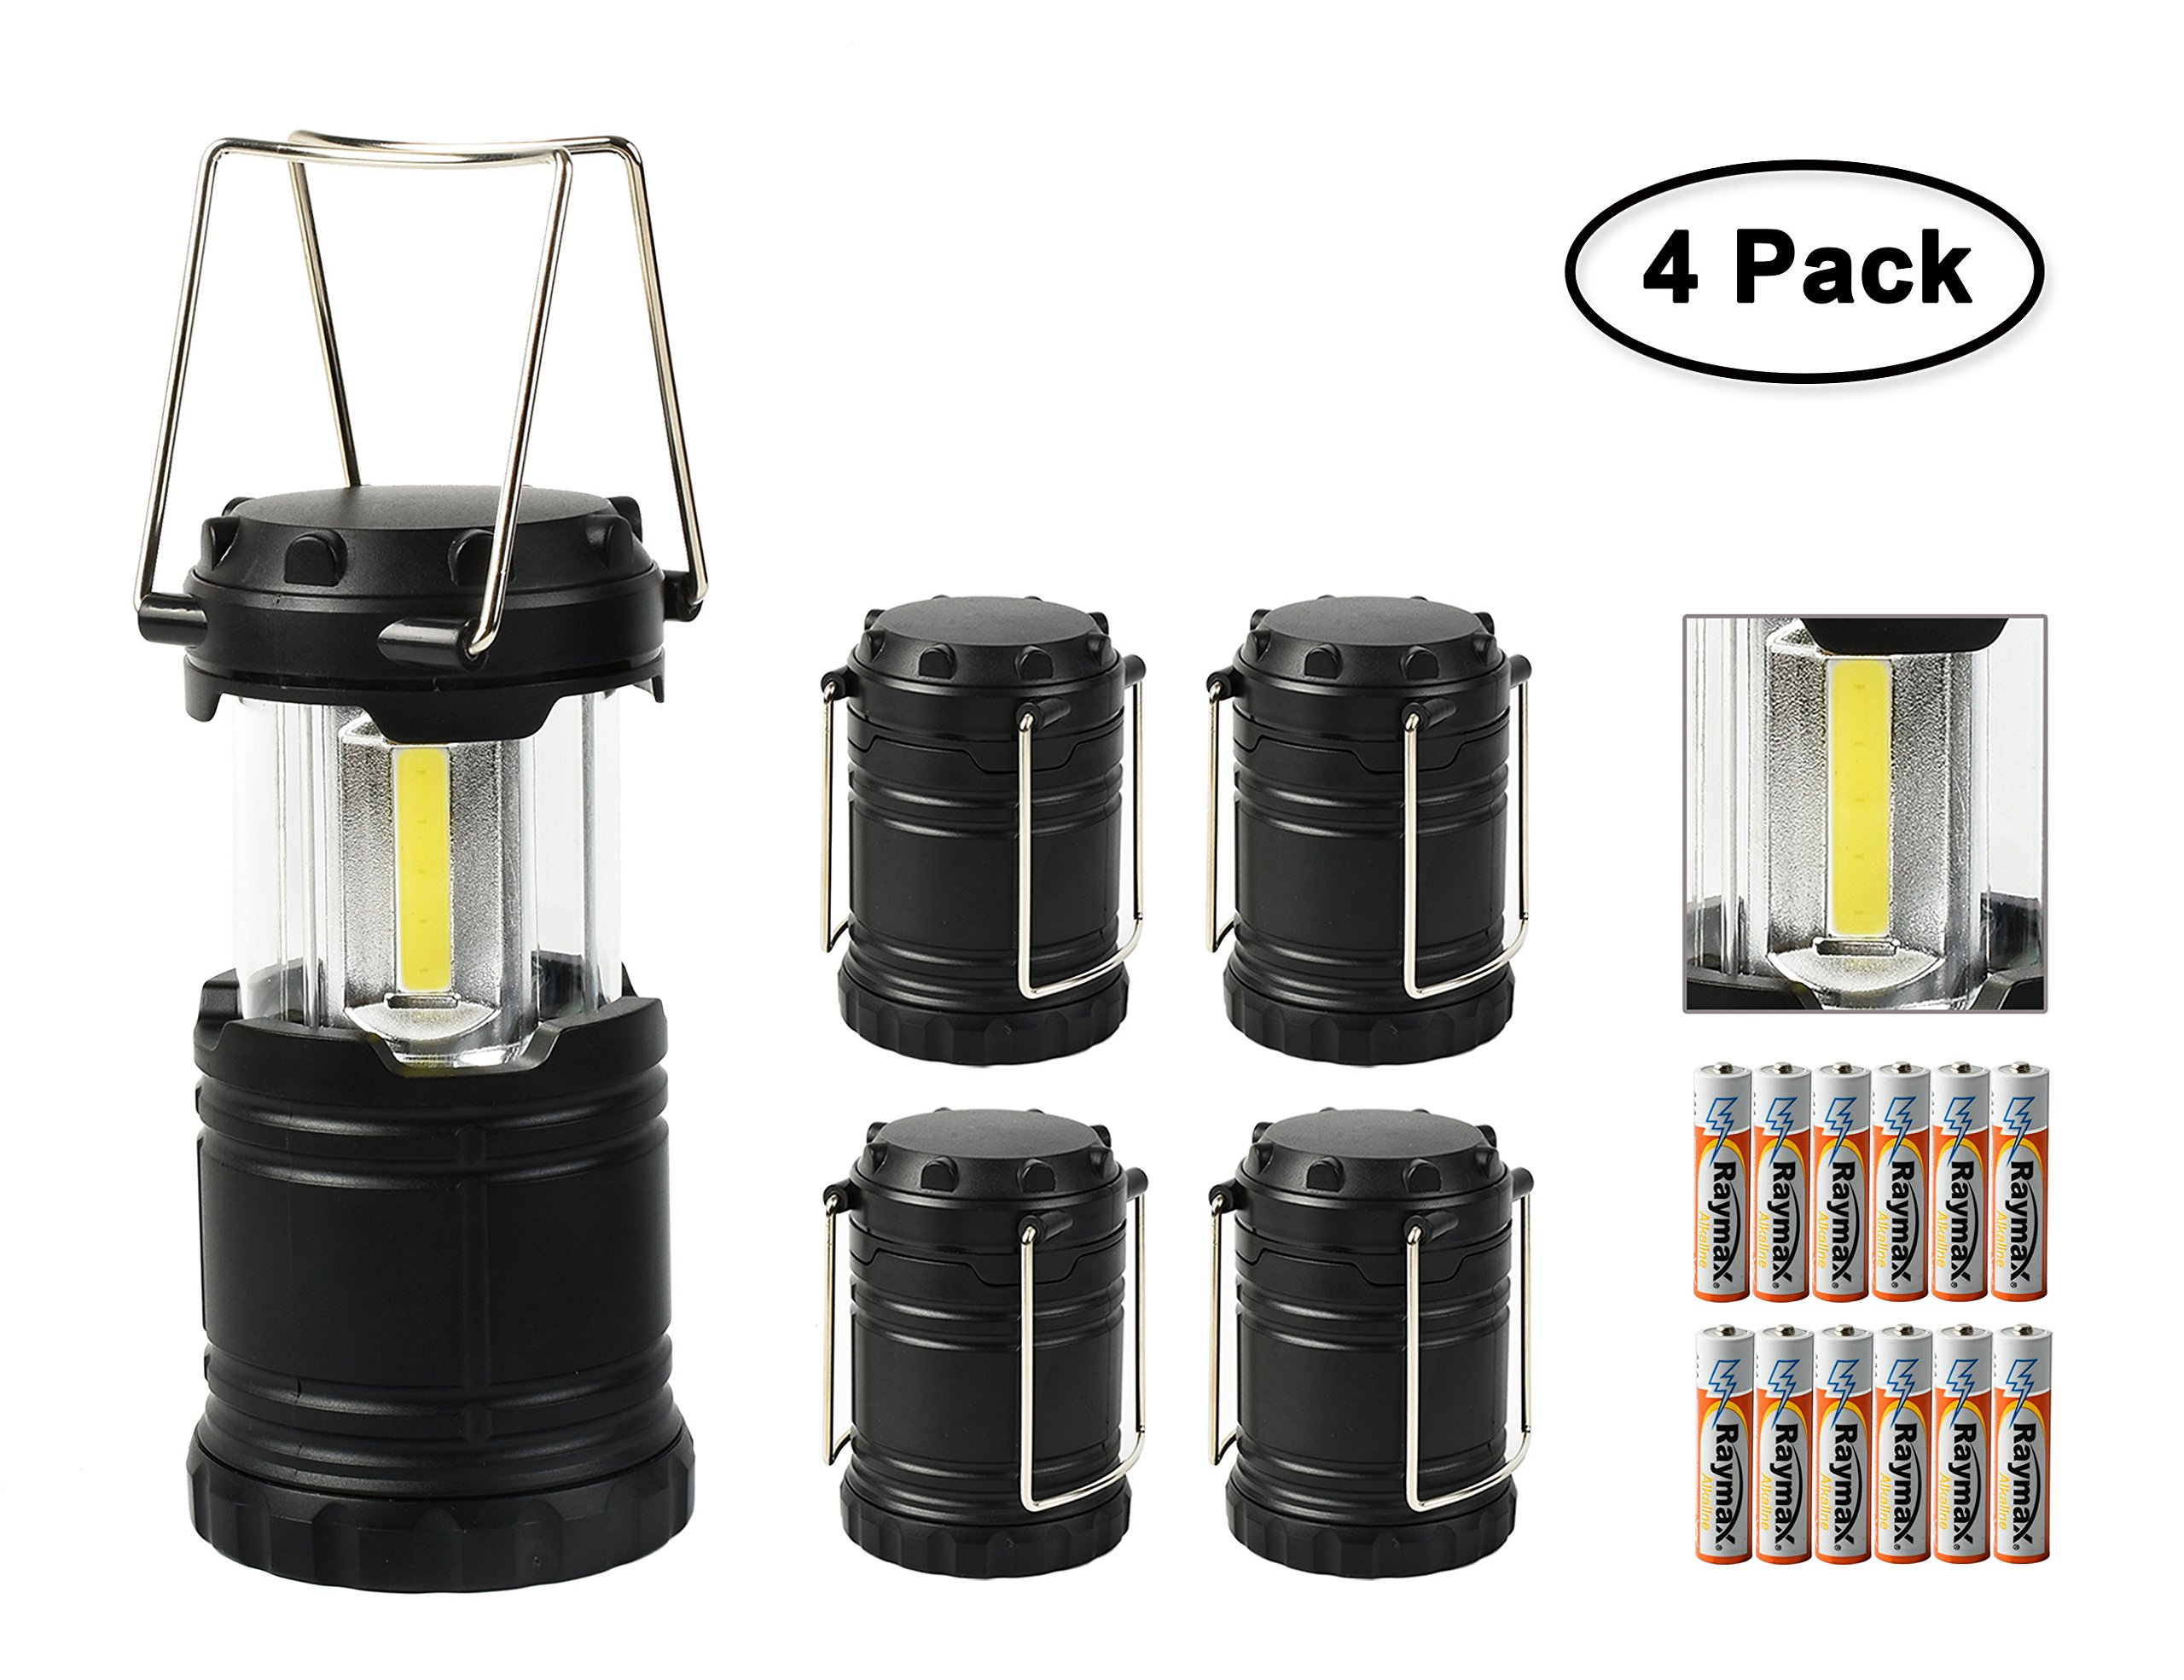 Worth LED Camping Lantern Ultra Bright Portable Collapsible Hanging Flashlight Water Resistant with 3 AAA Batteries for Hiking Fishing Black, 4 Pack